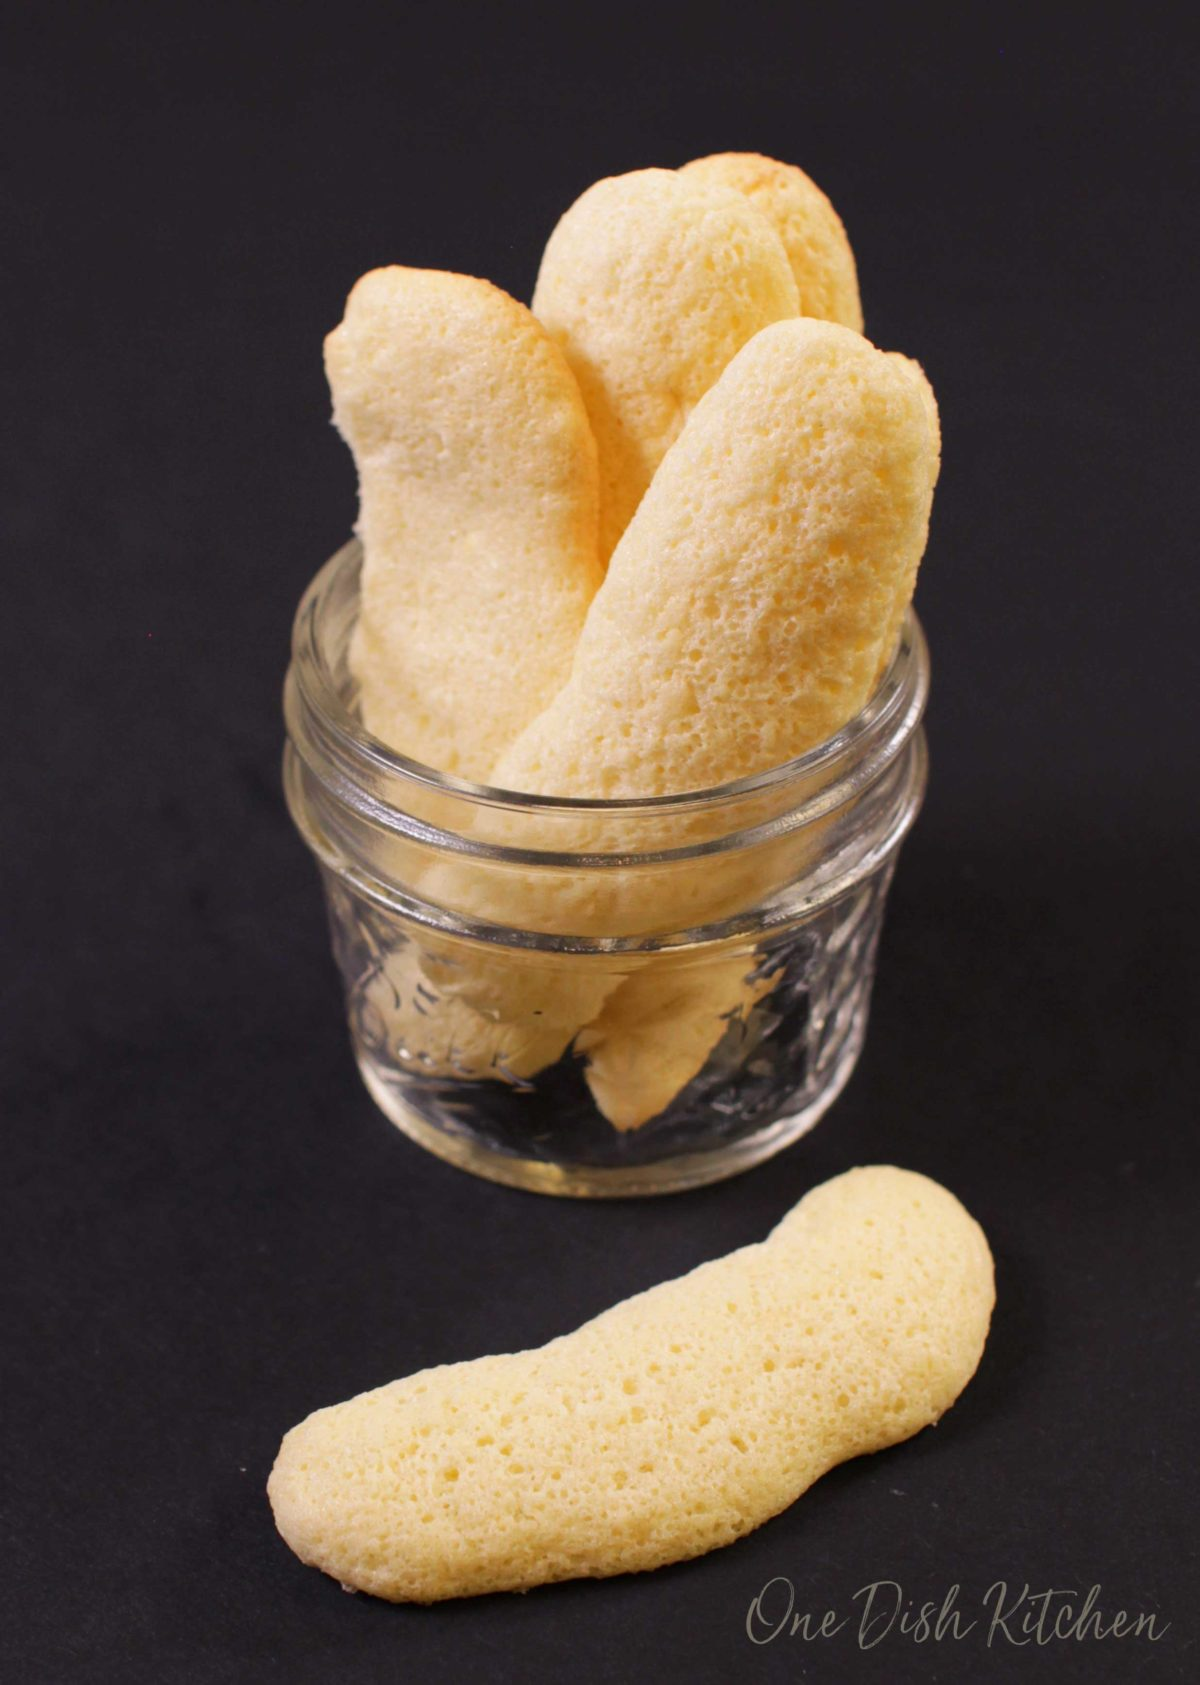 A small jar filled with four homemade ladyfingers with one lady finger laying next to the jar